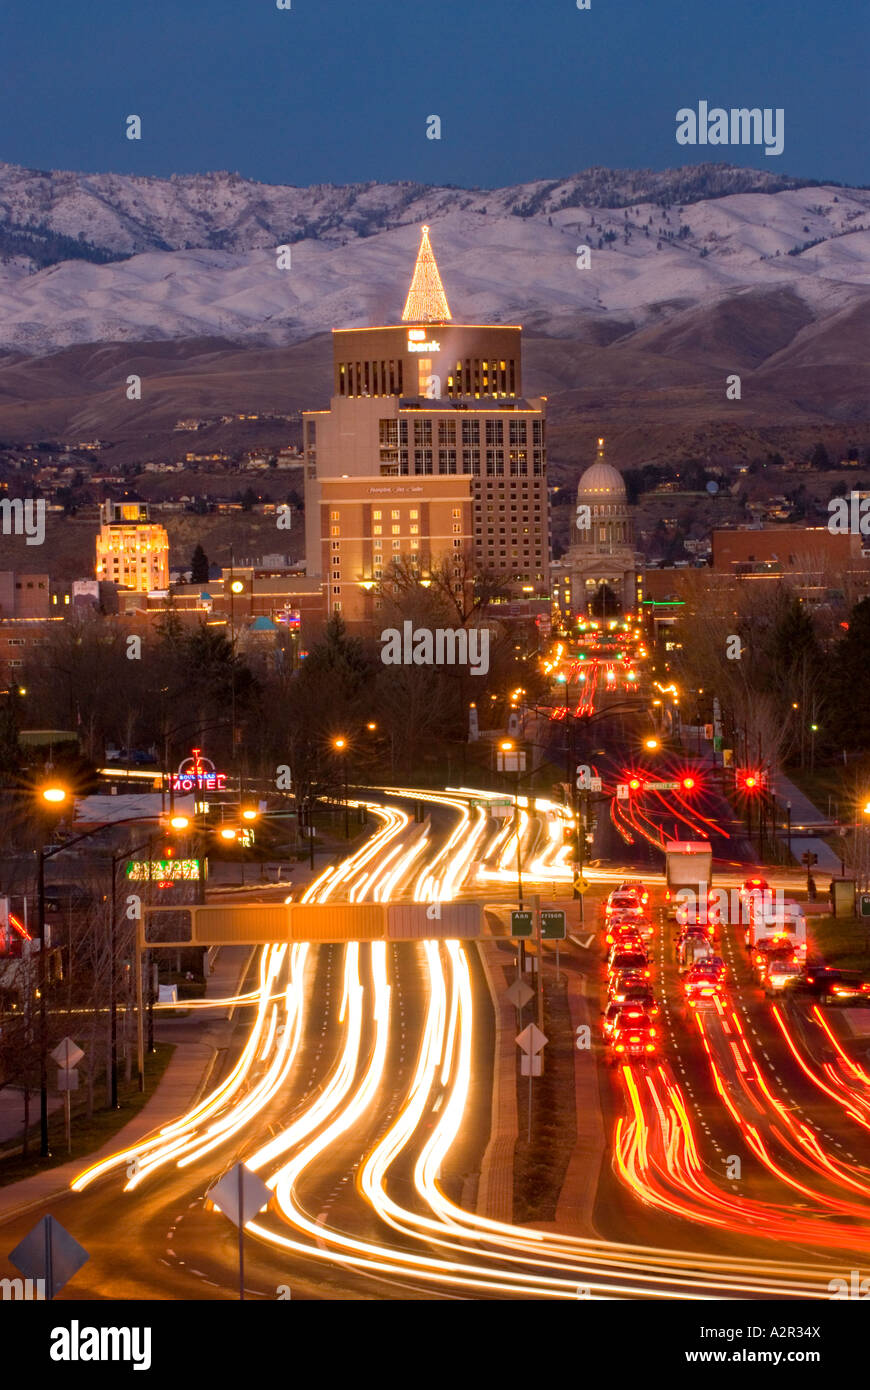 Boise Idaho Skyline In Winter Stock Photos & Boise Idaho Skyline In ...